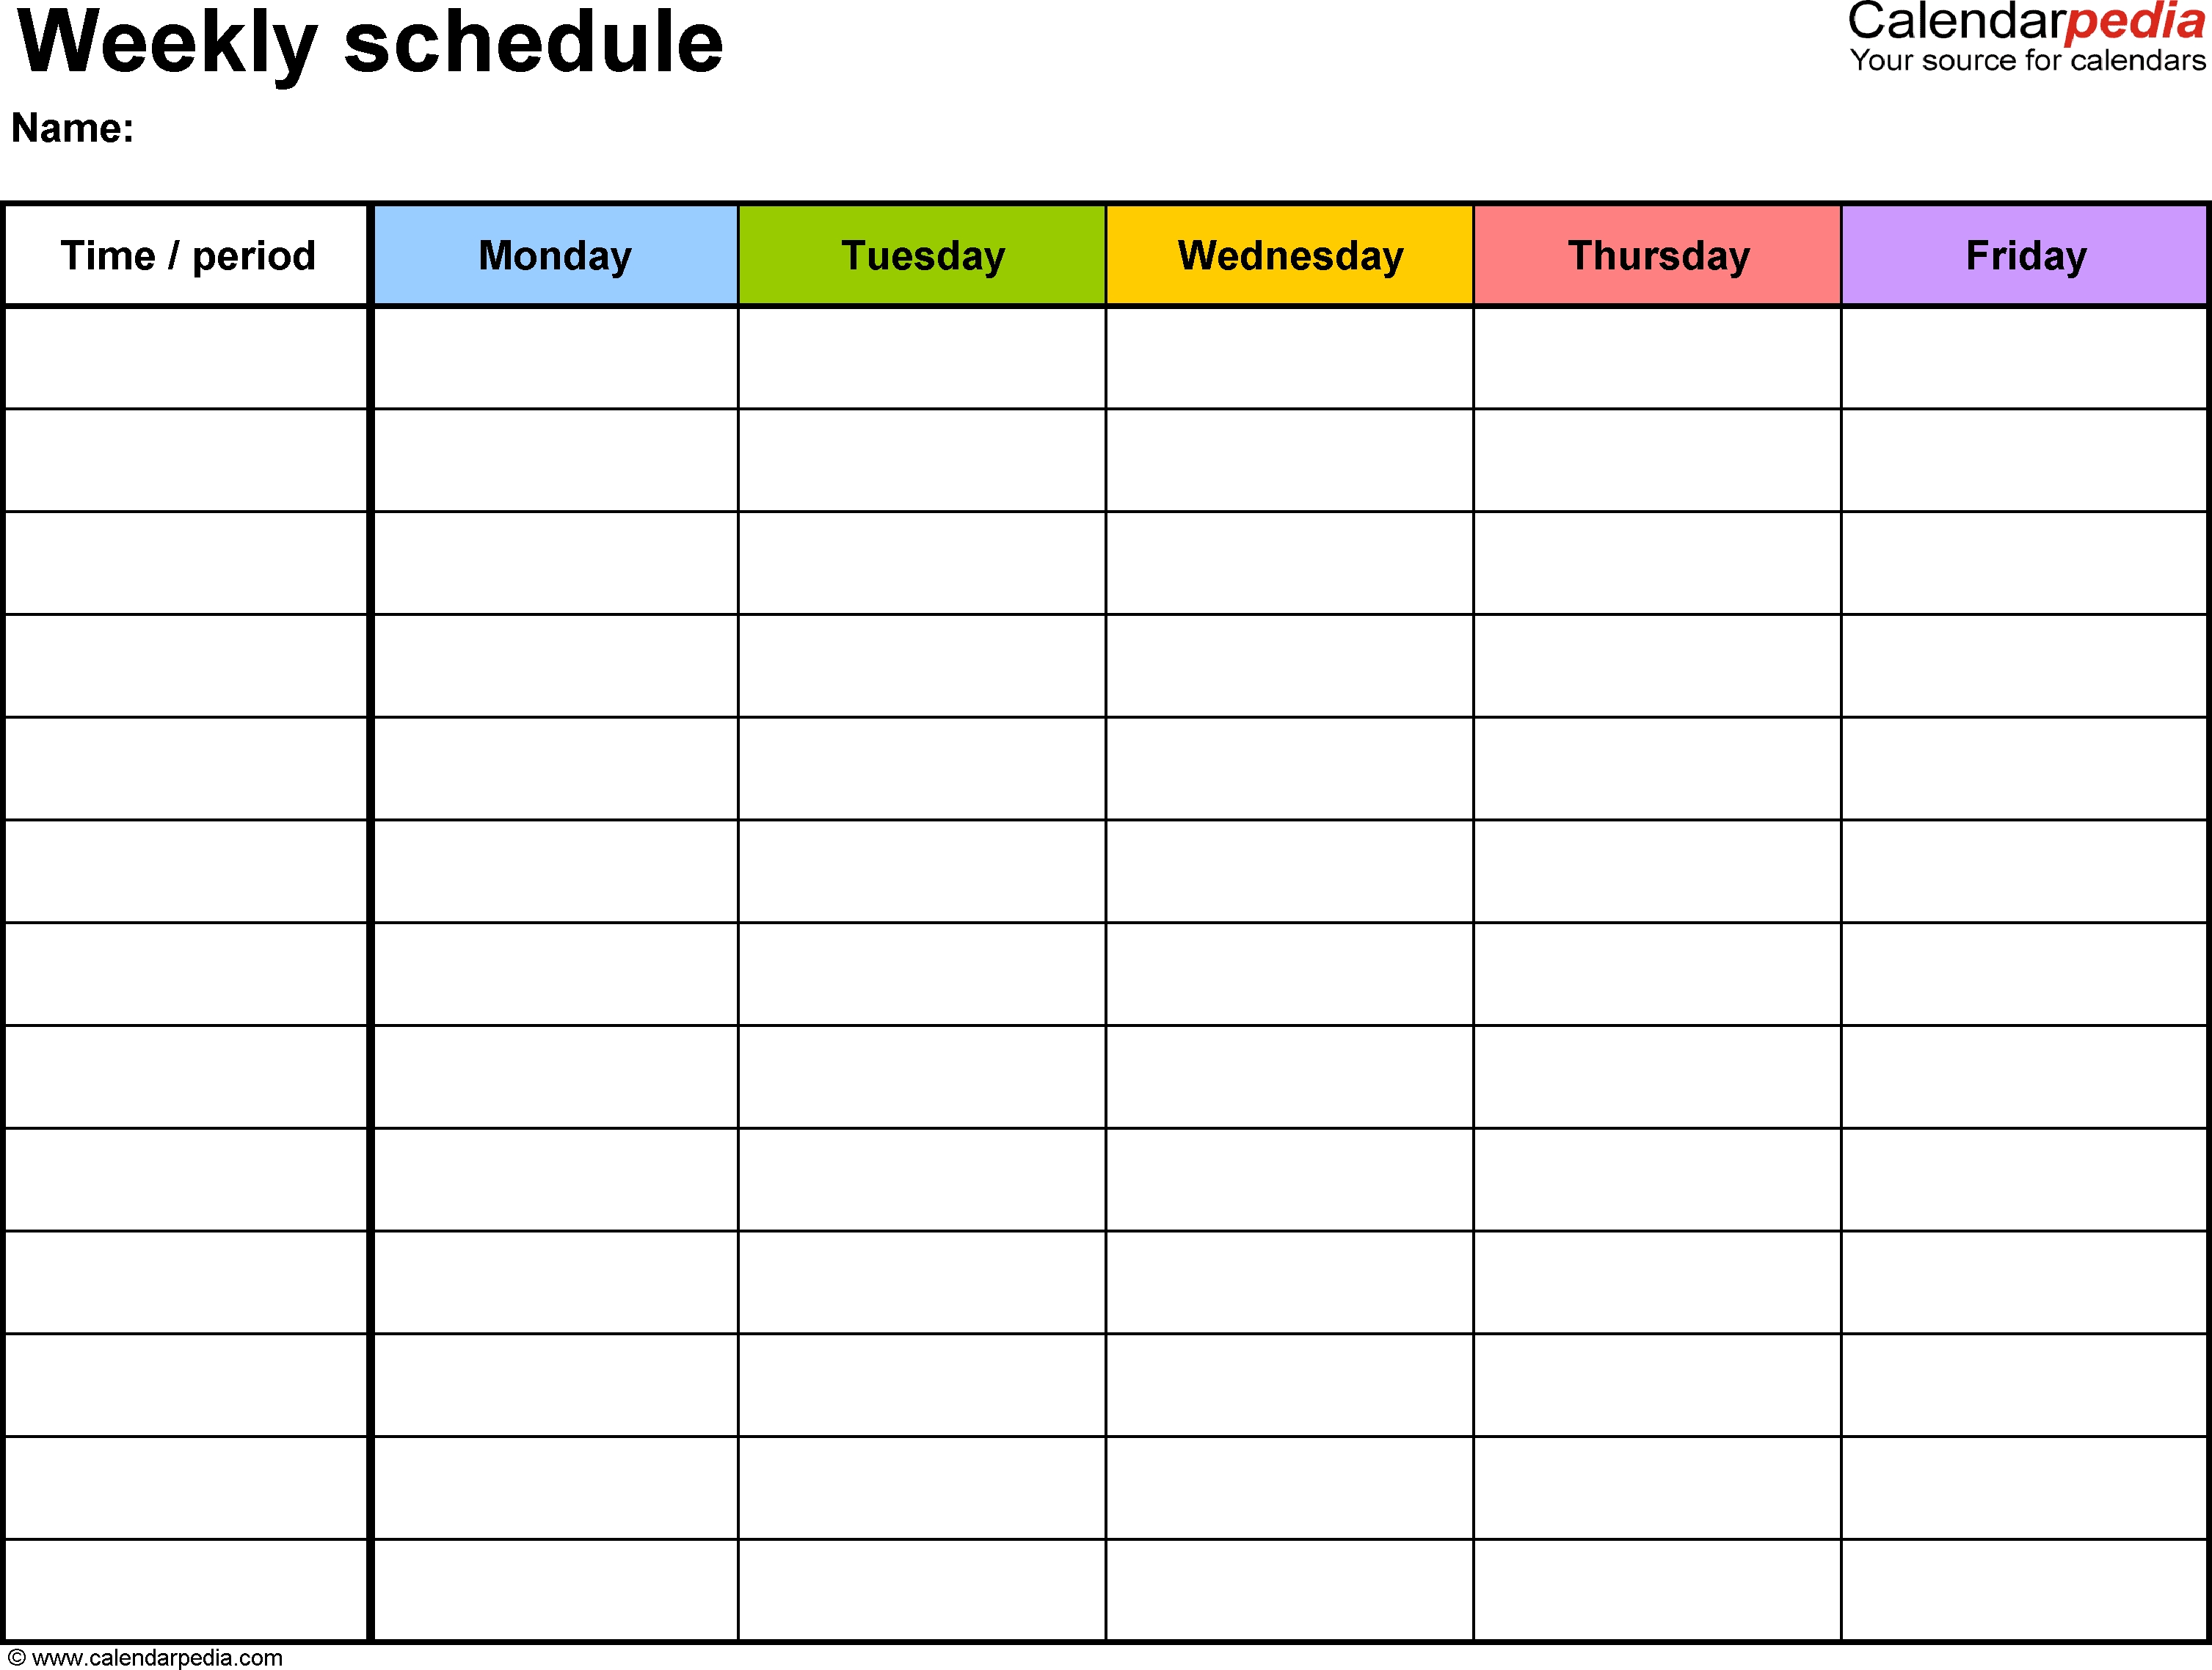 Weekly Schedule Template For Word Version 1: Landscape, 1 with regard to Printable To Do Monday To Friday